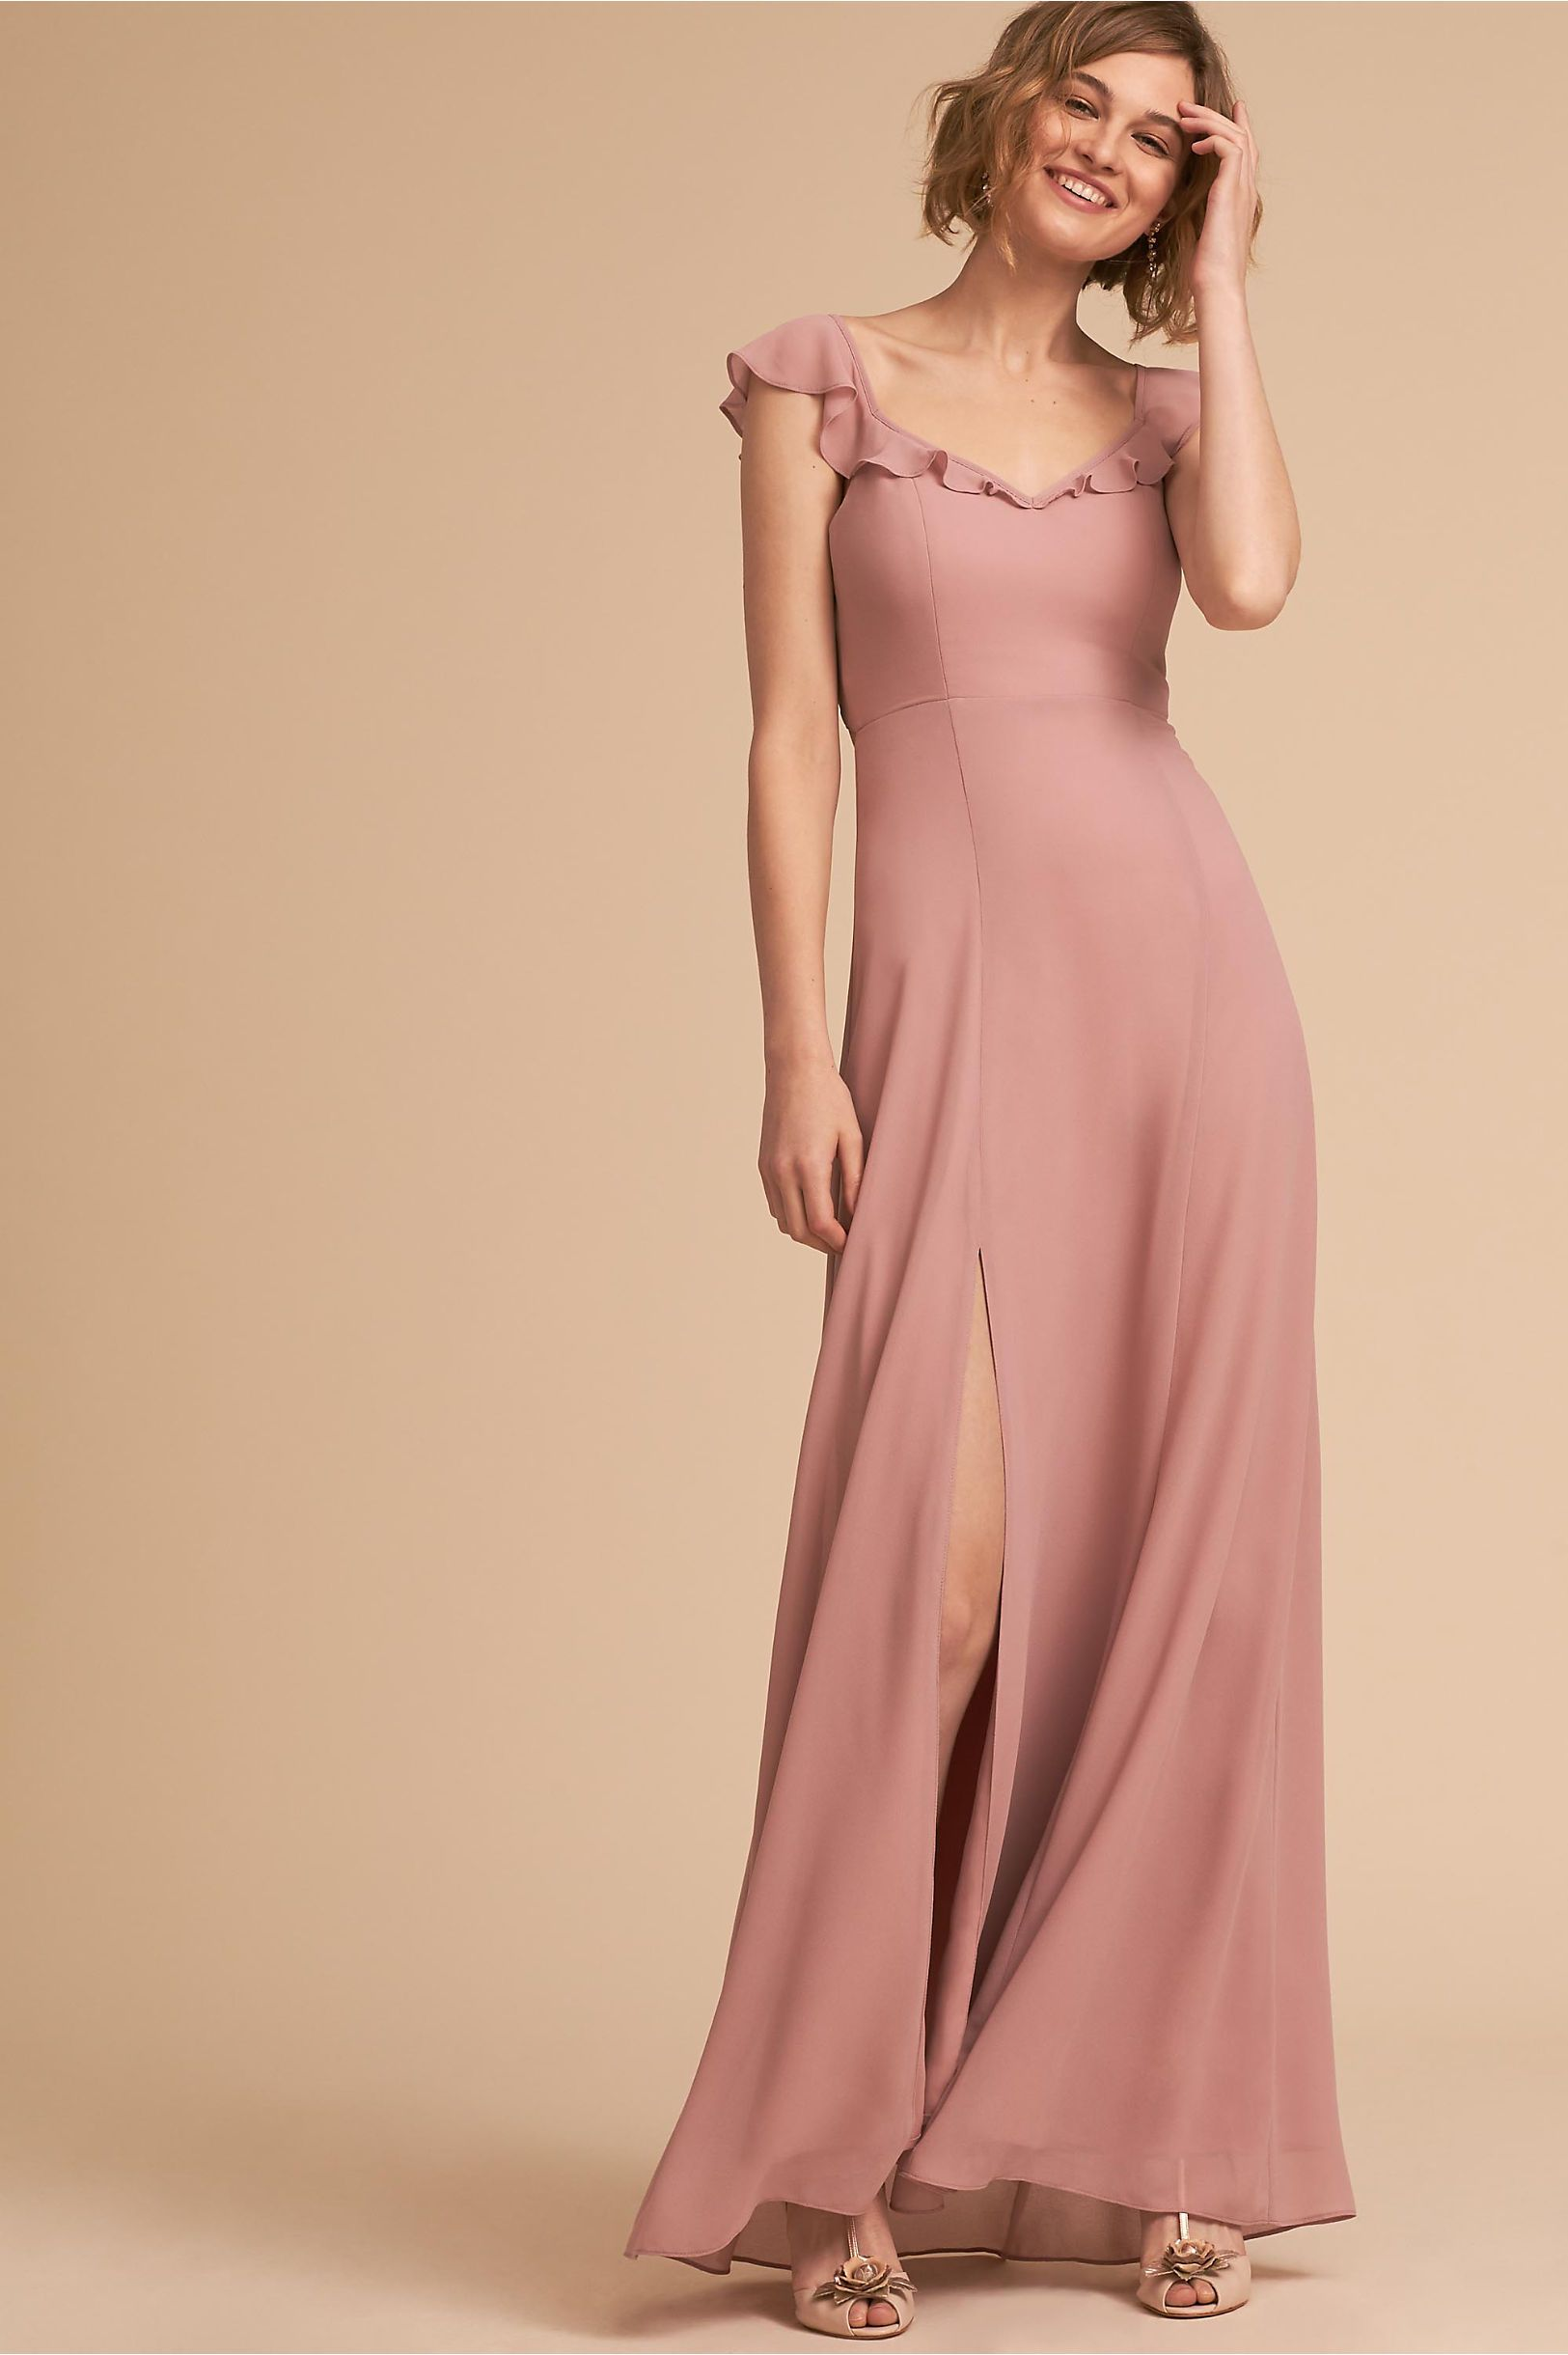 BHLDN Diana Dress Nude in Bridal Party | BHLDN | Bridesmaid Dresses ...